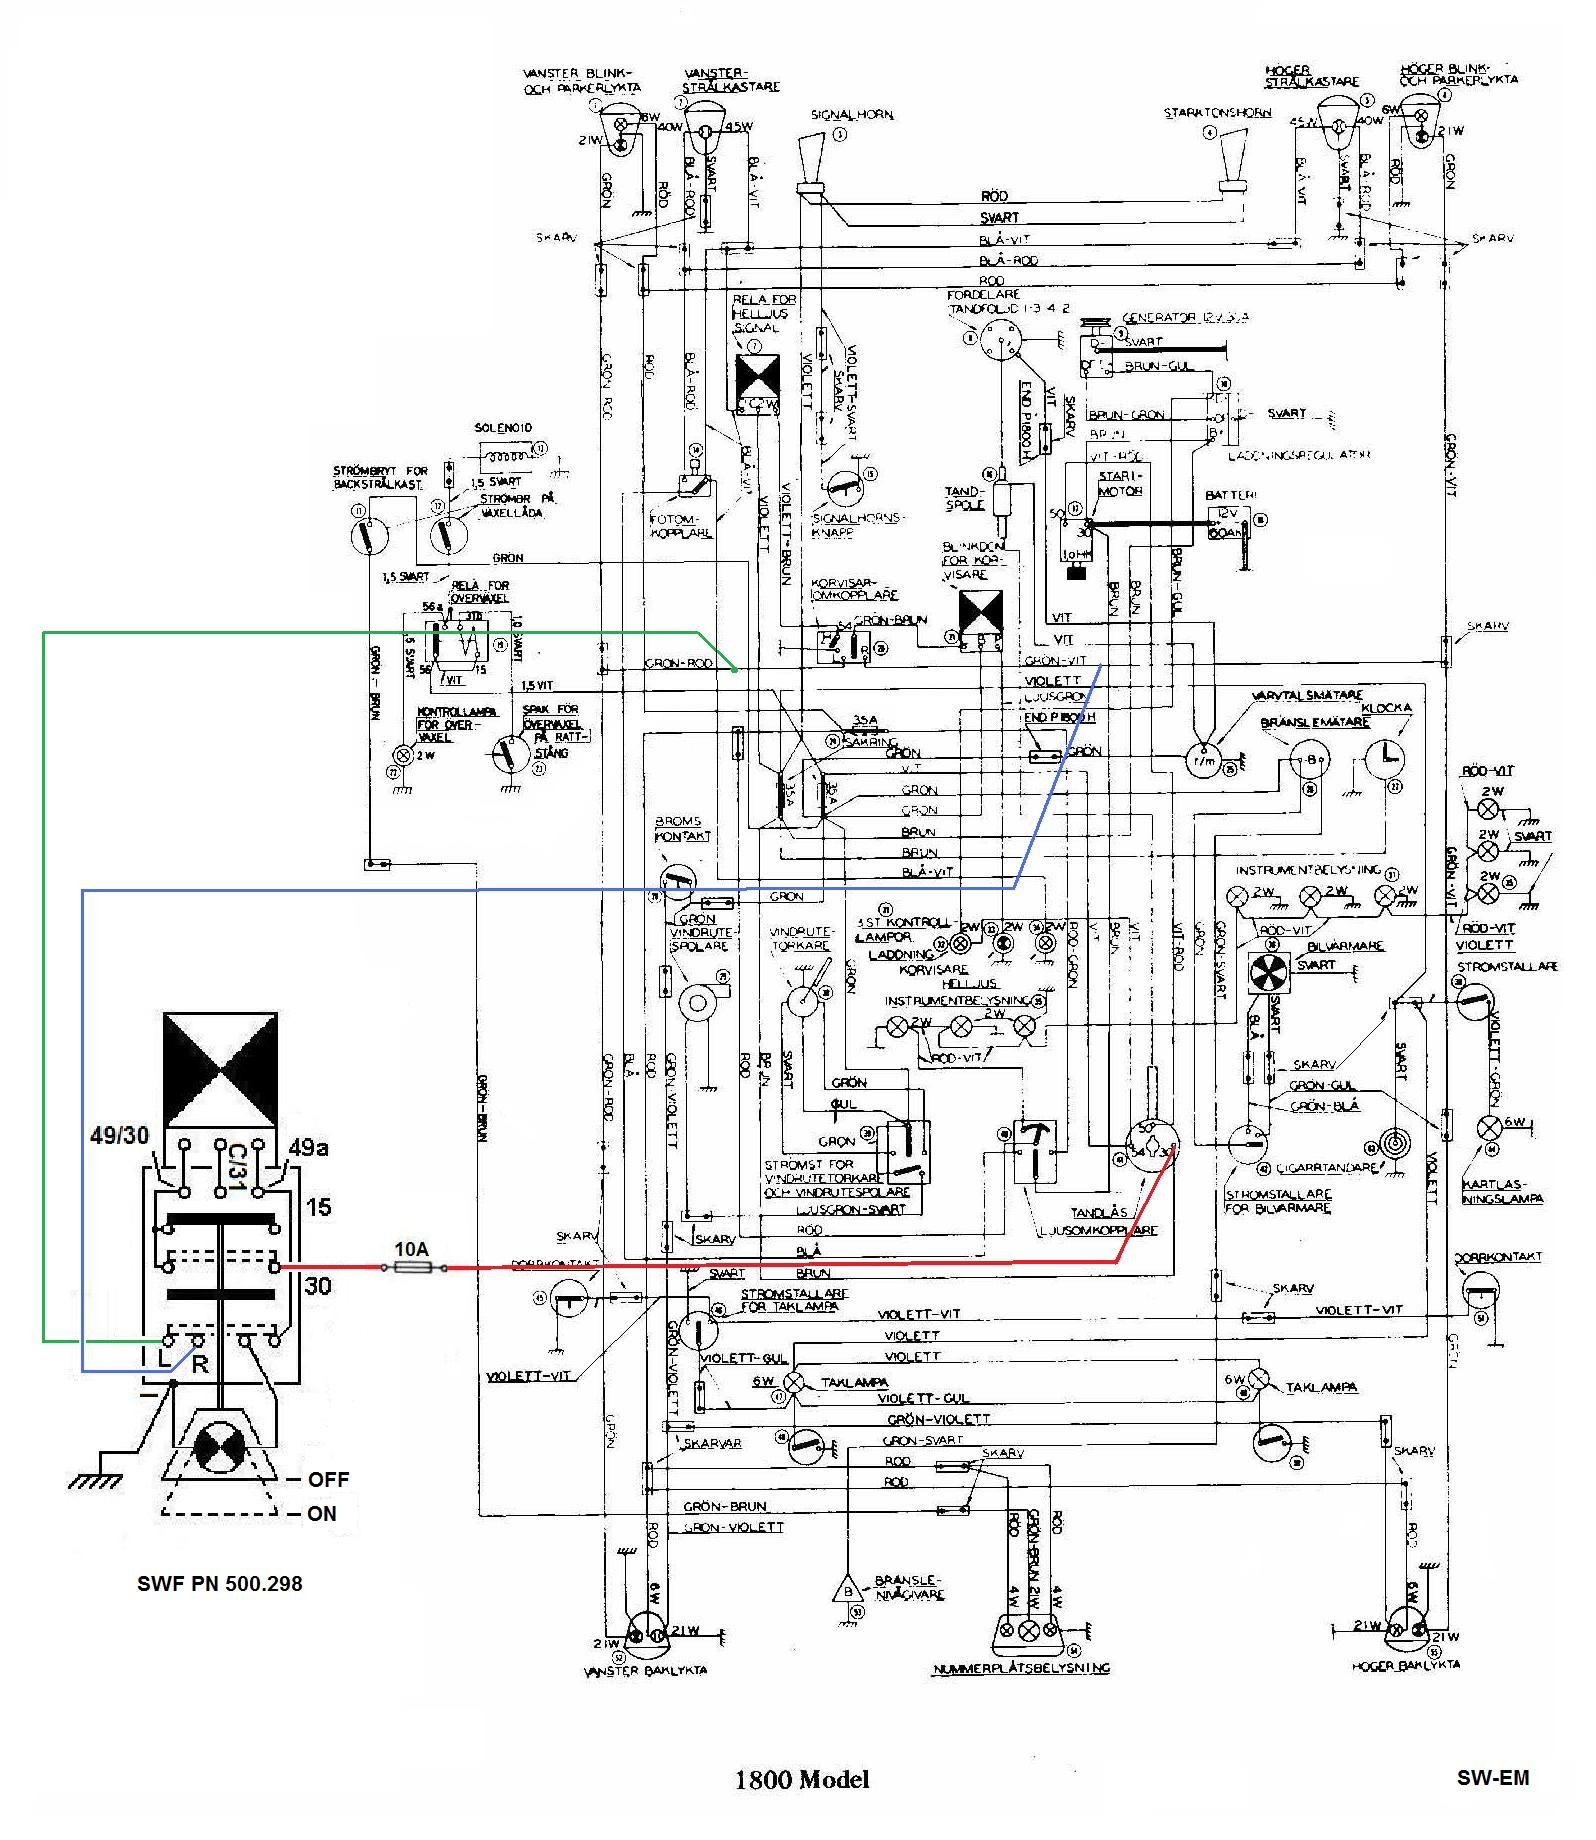 turn signal switch diagram 1973 1979 ford truck wiring